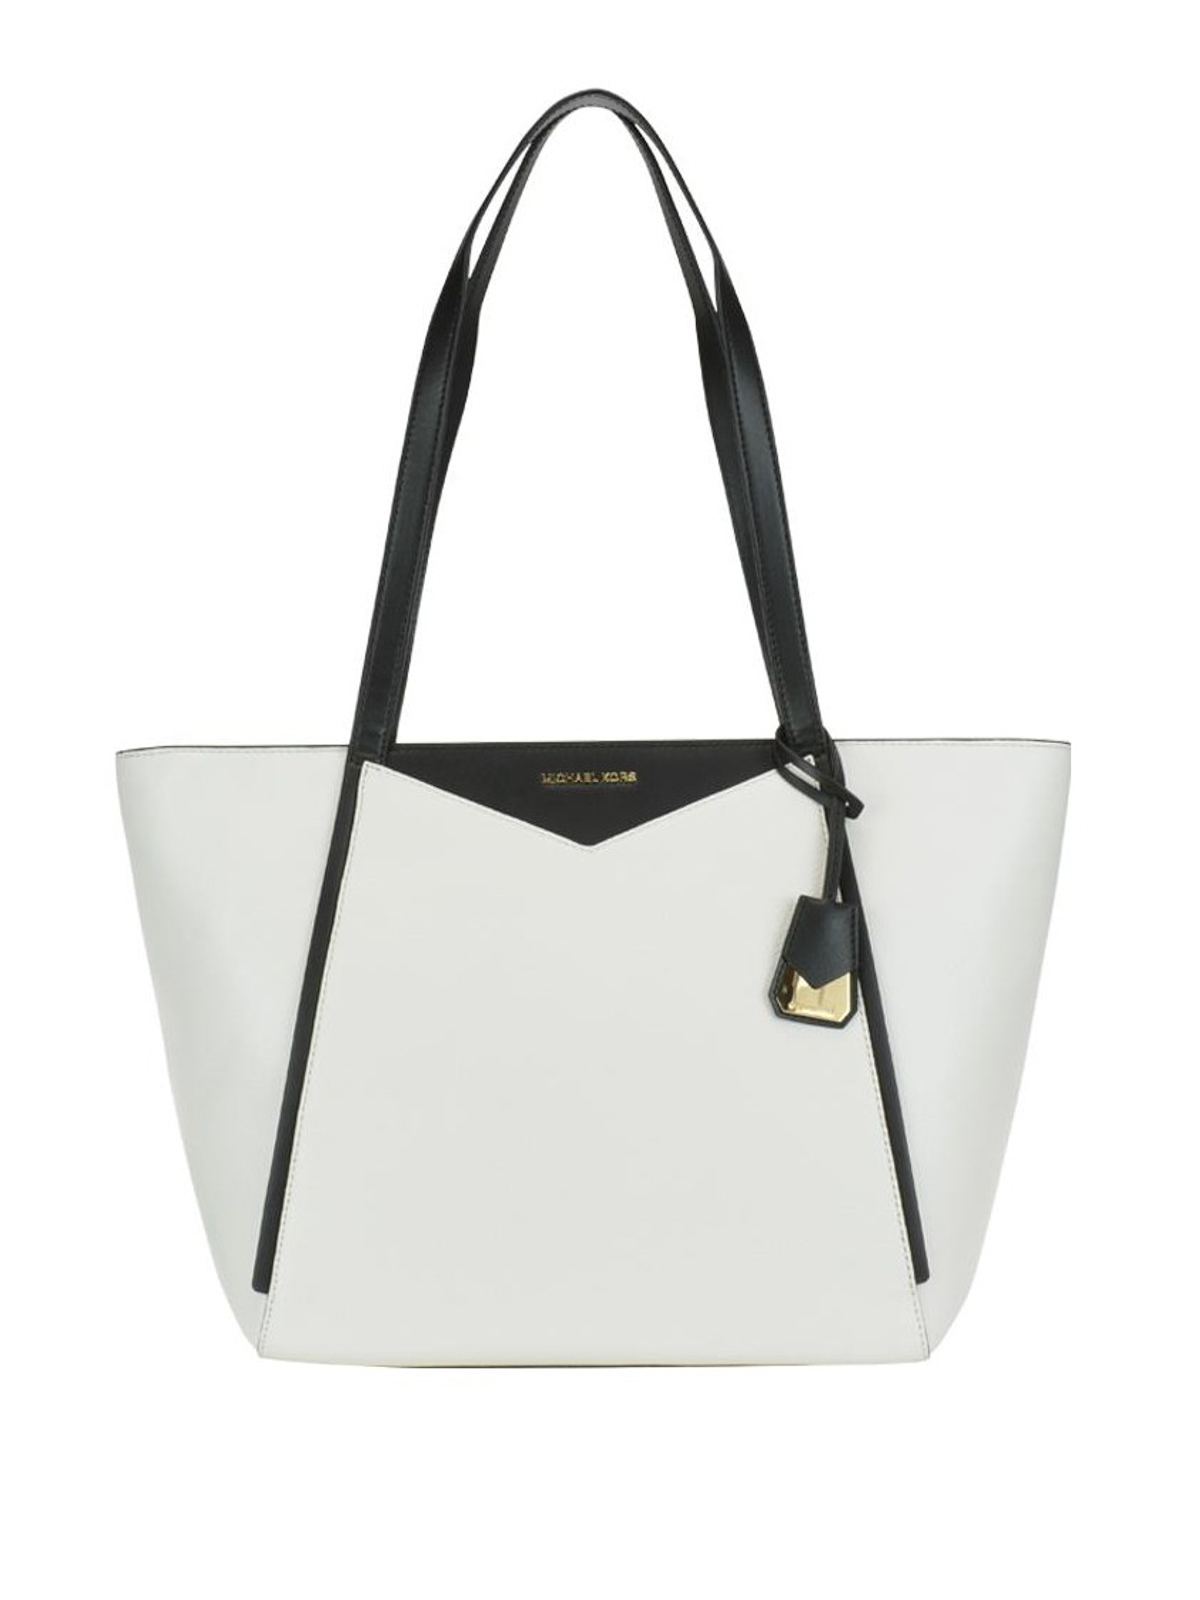 2828d1ae4a8d Michael Kors - Whitney bicolour leather large tote - totes bags ...